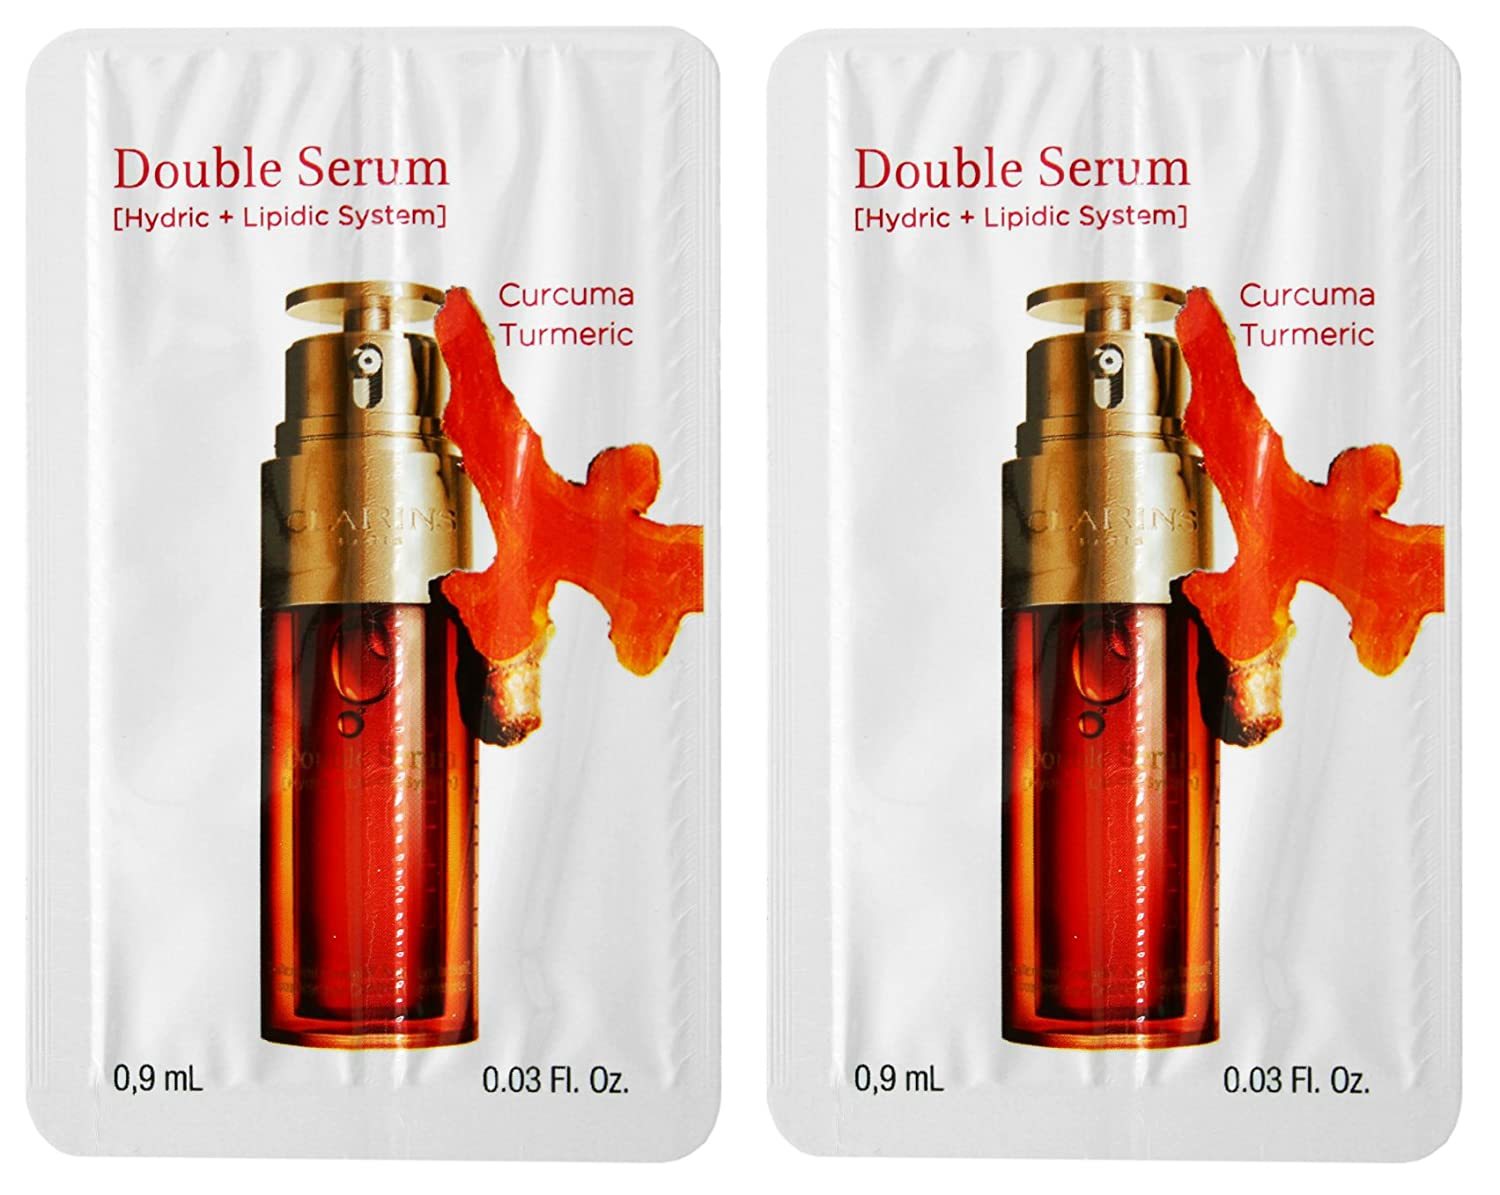 Amazon.com: Clarins Double Serum Hydric + Lipidic System ...